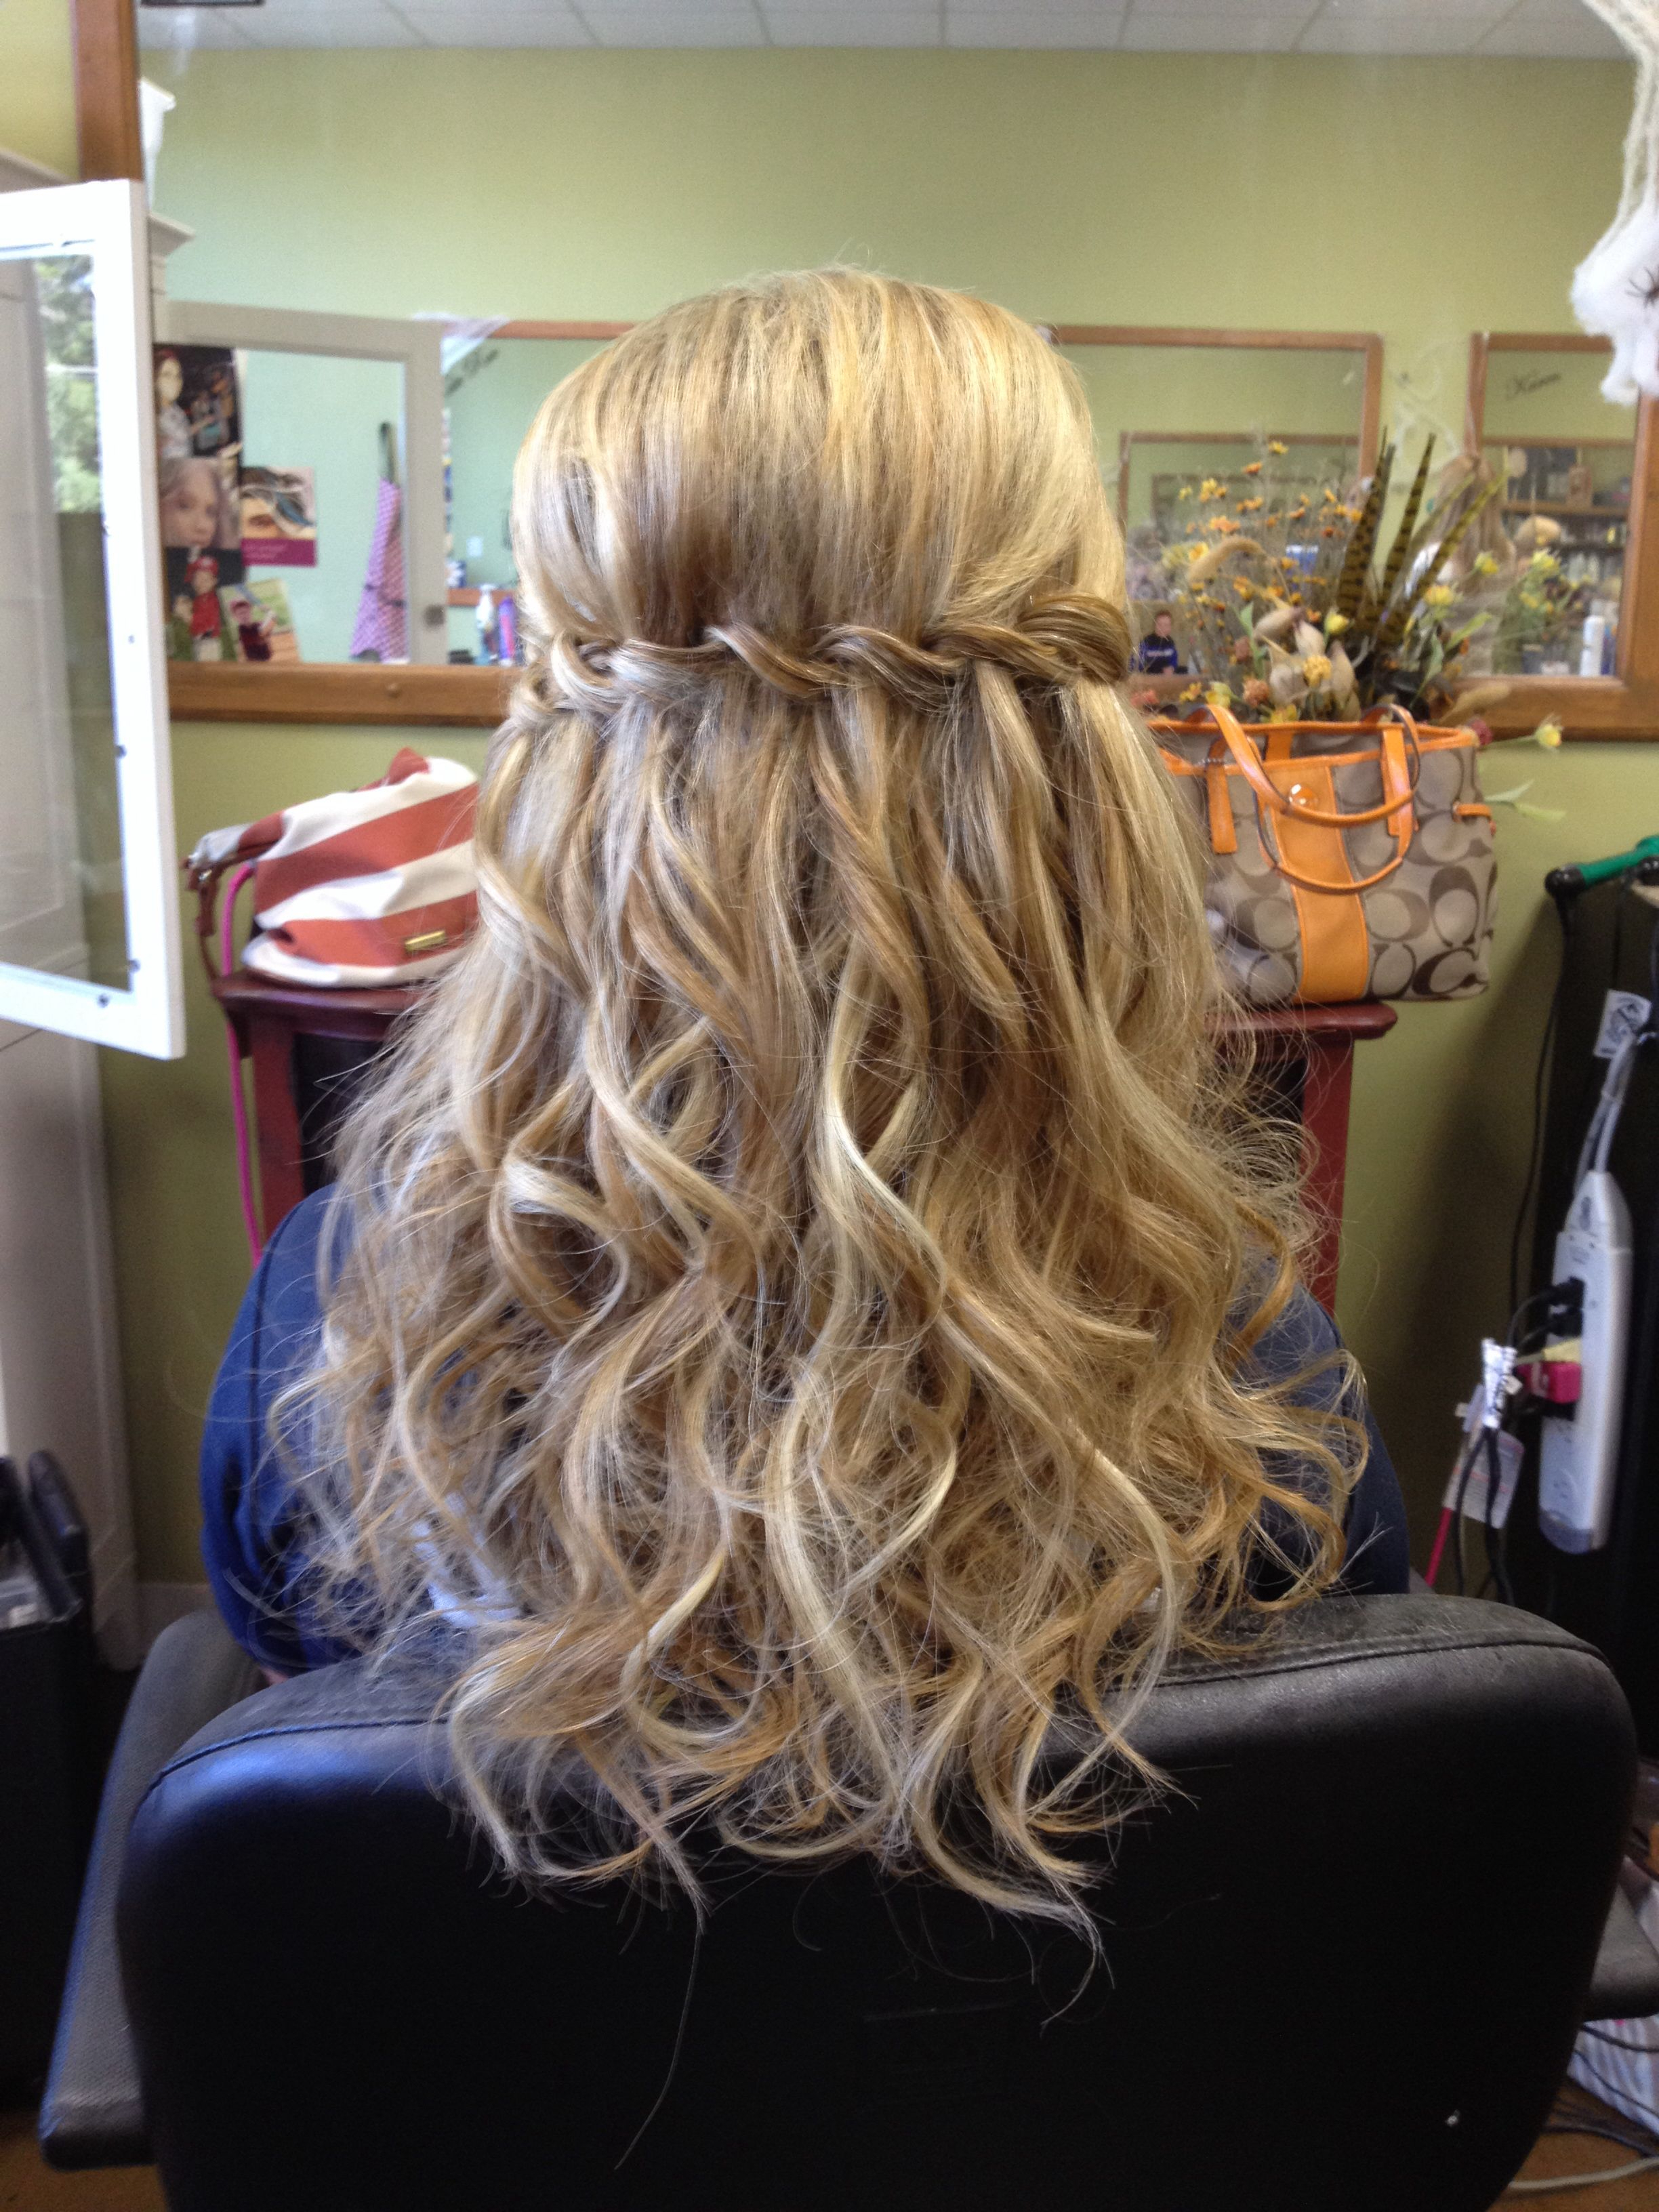 2017 Chic Waterfall Braid Prom Updos Within Waterfall Braid With Extensions, Curls, Half Up, Bridal Party (Gallery 8 of 20)